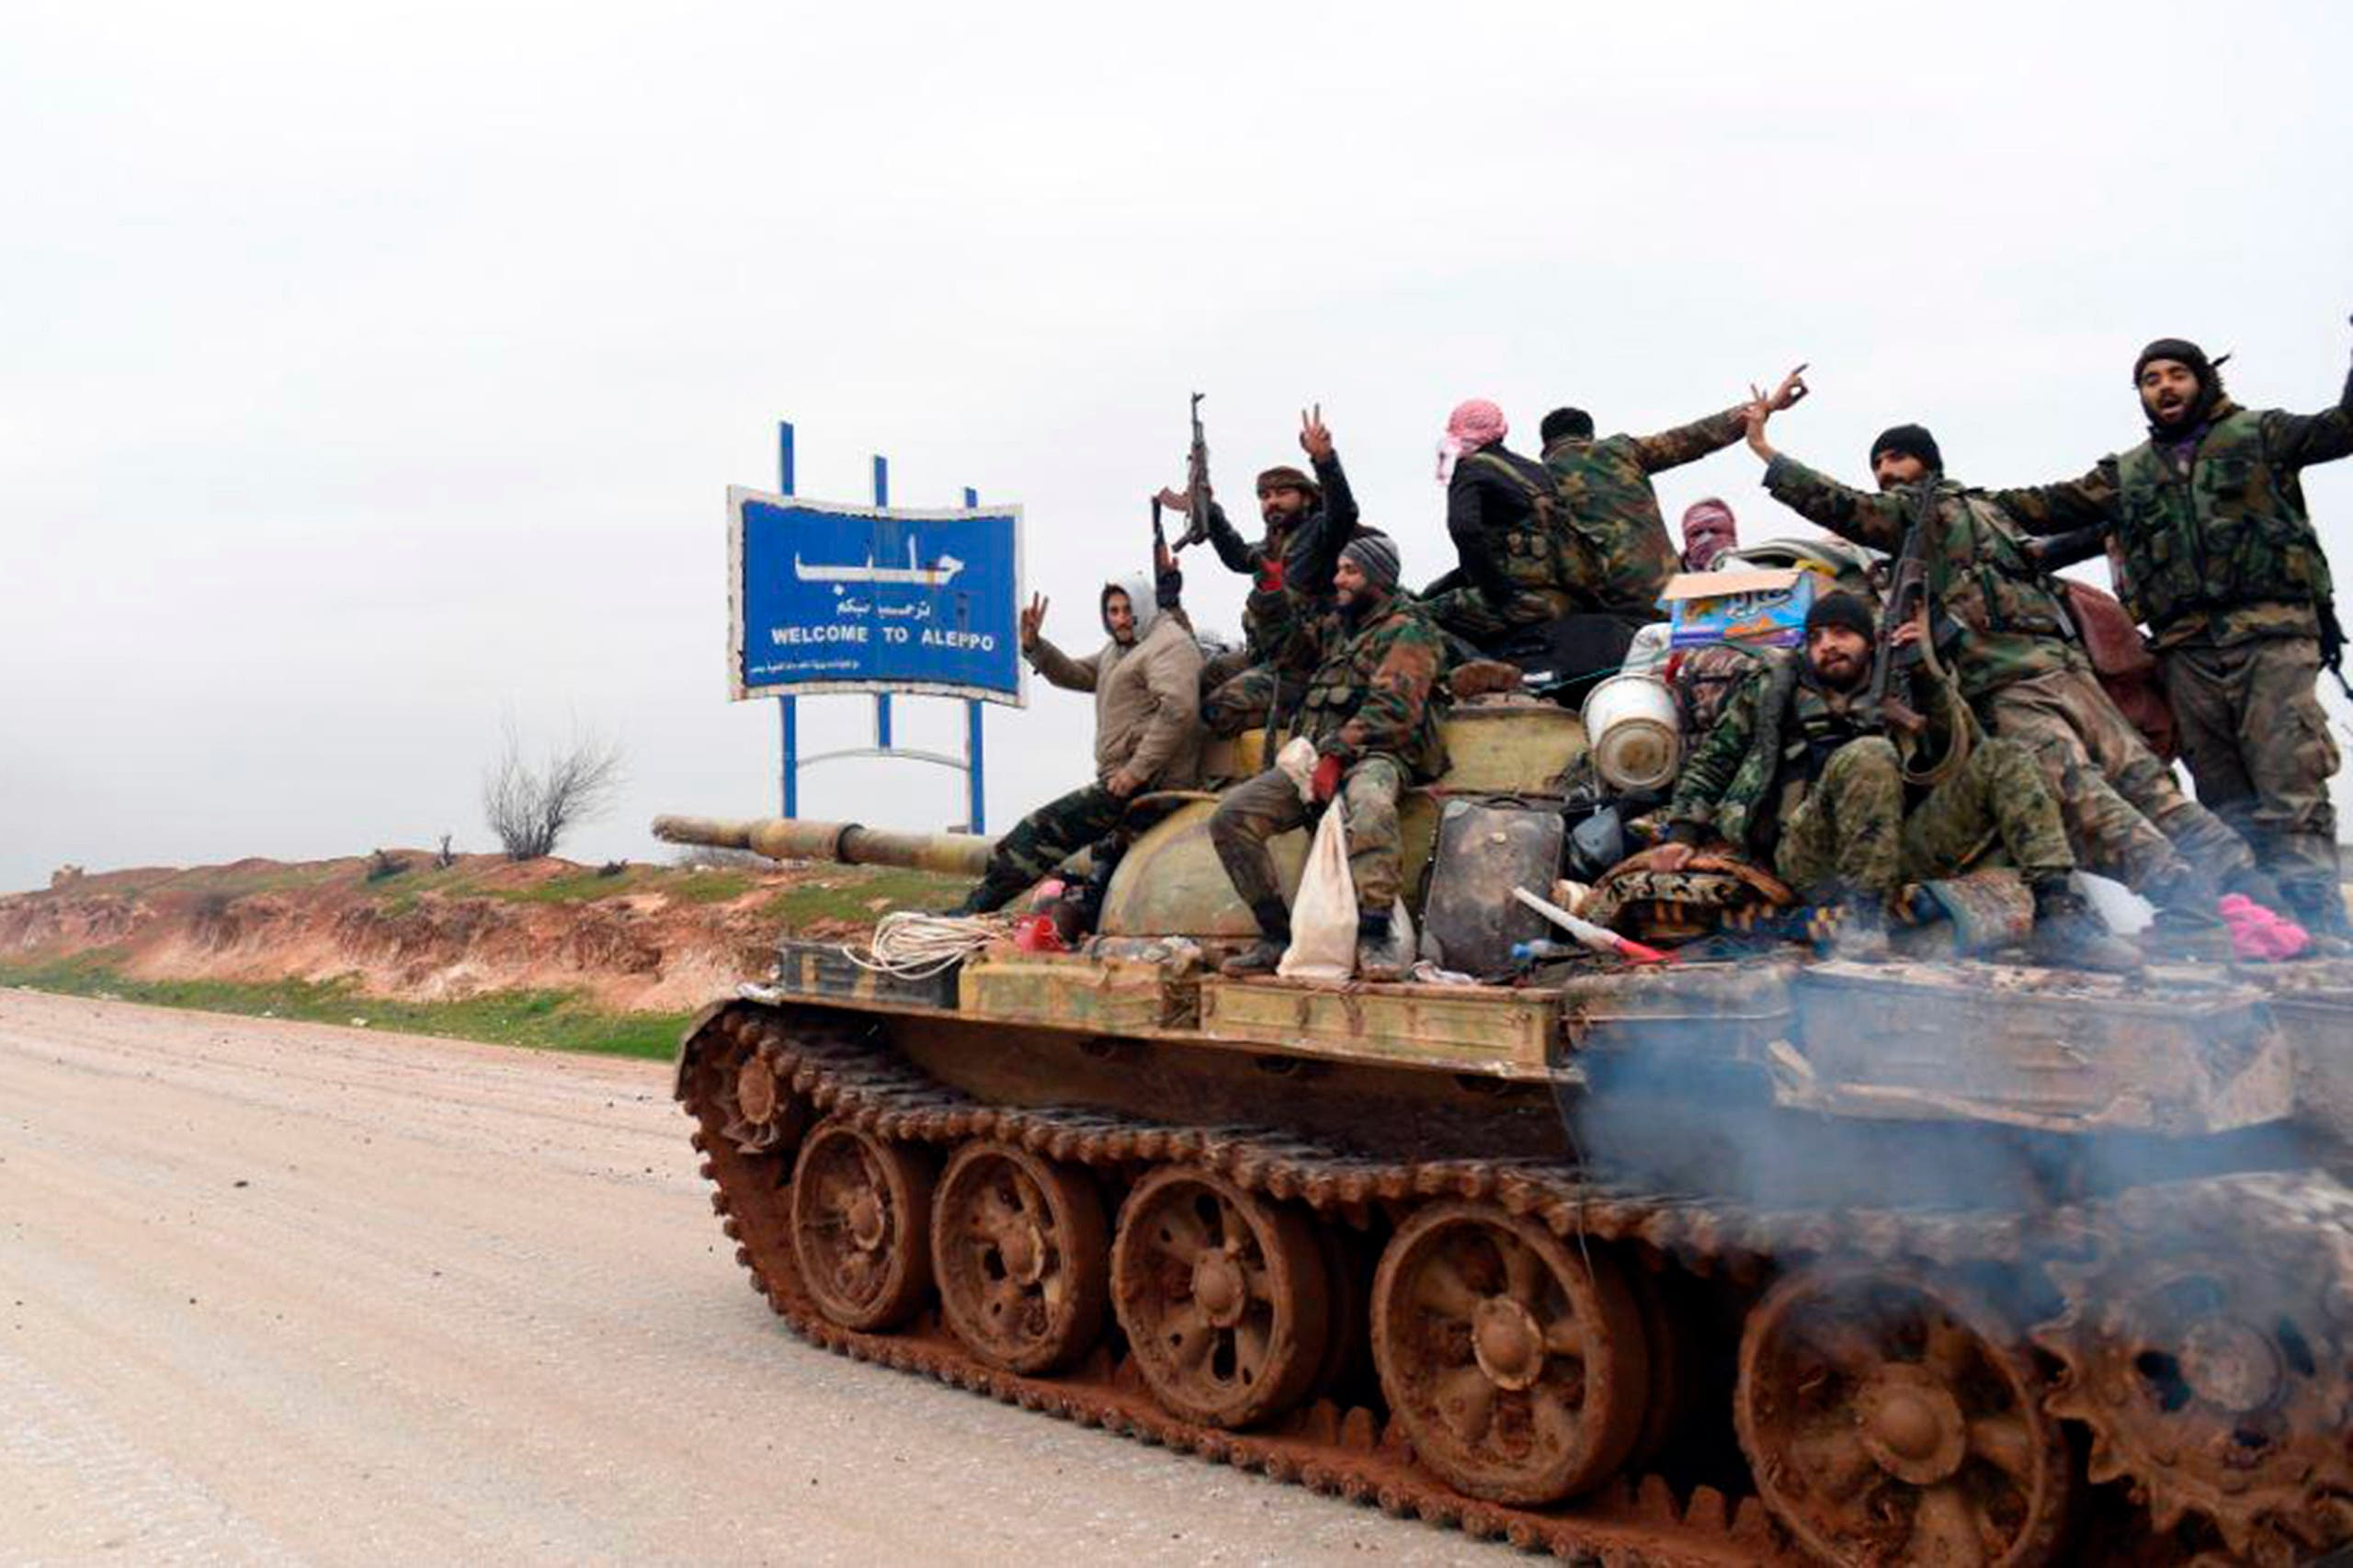 In this photo released Wednesday, February 12, 2020, by the Syrian official news agency SANA, Syrian government soldiers on a tank hold up their rifles and flash victory signs, as they patrol the highway that links the capital Damascus with the northern city of Aleppo. (SANA via The Associated Press)